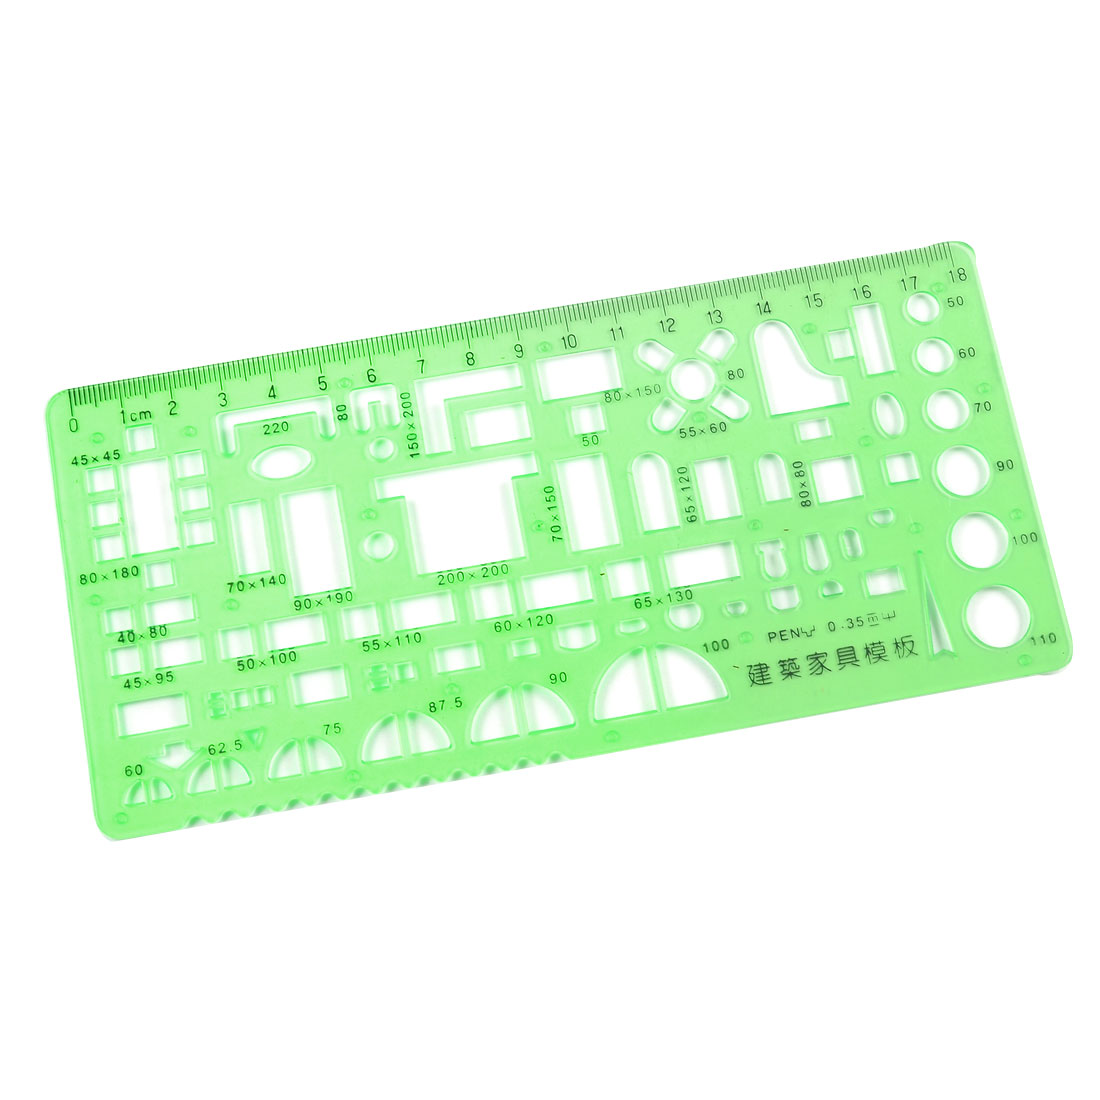 0-18cm Centimeter Measuring Plastic Construction Template Ruler Green